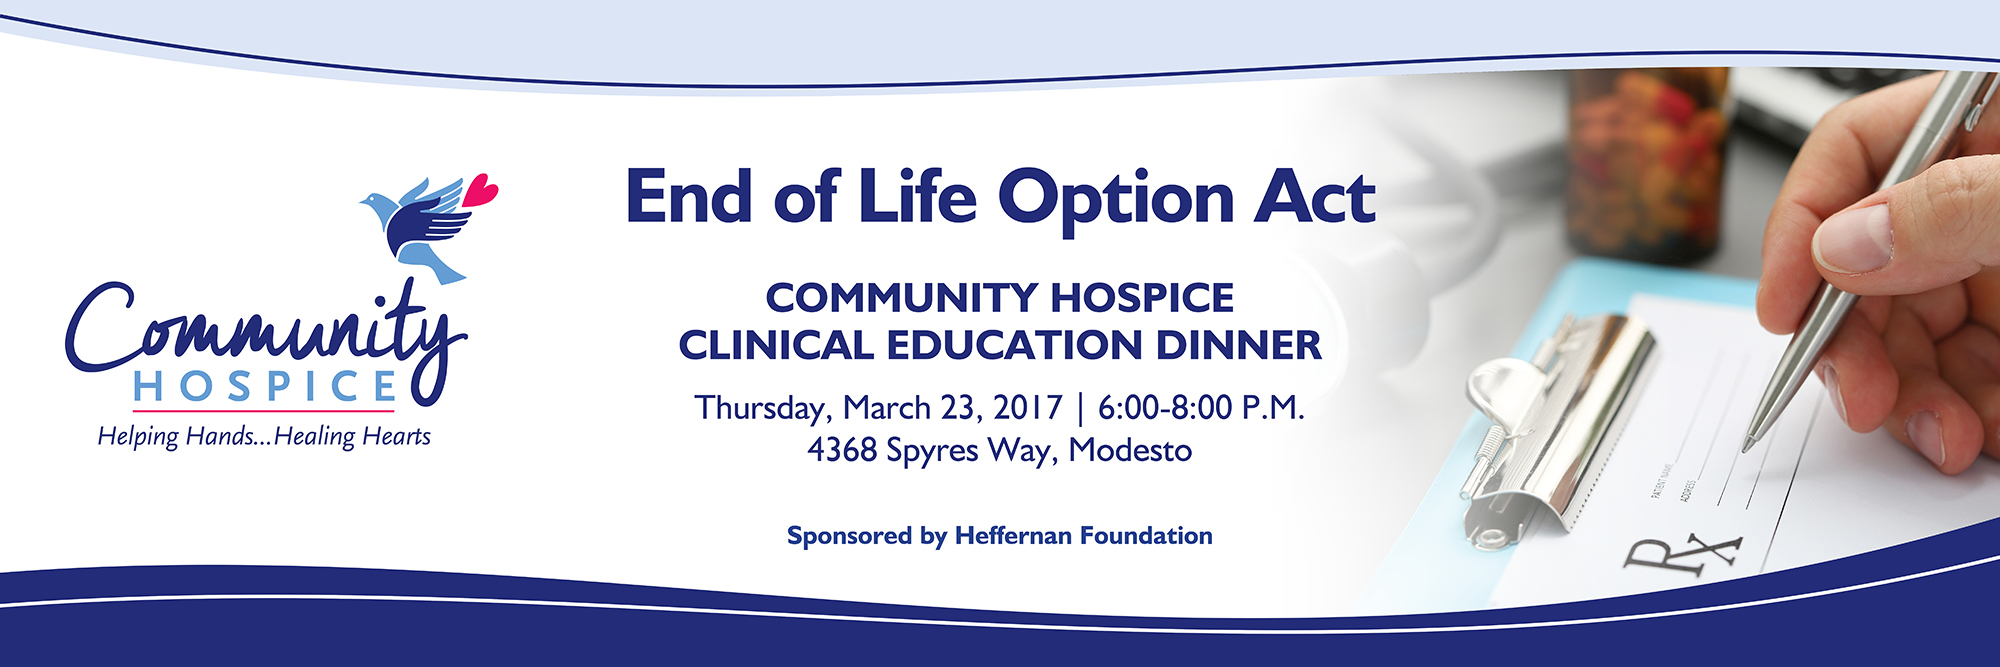 Clinical Education Dinner